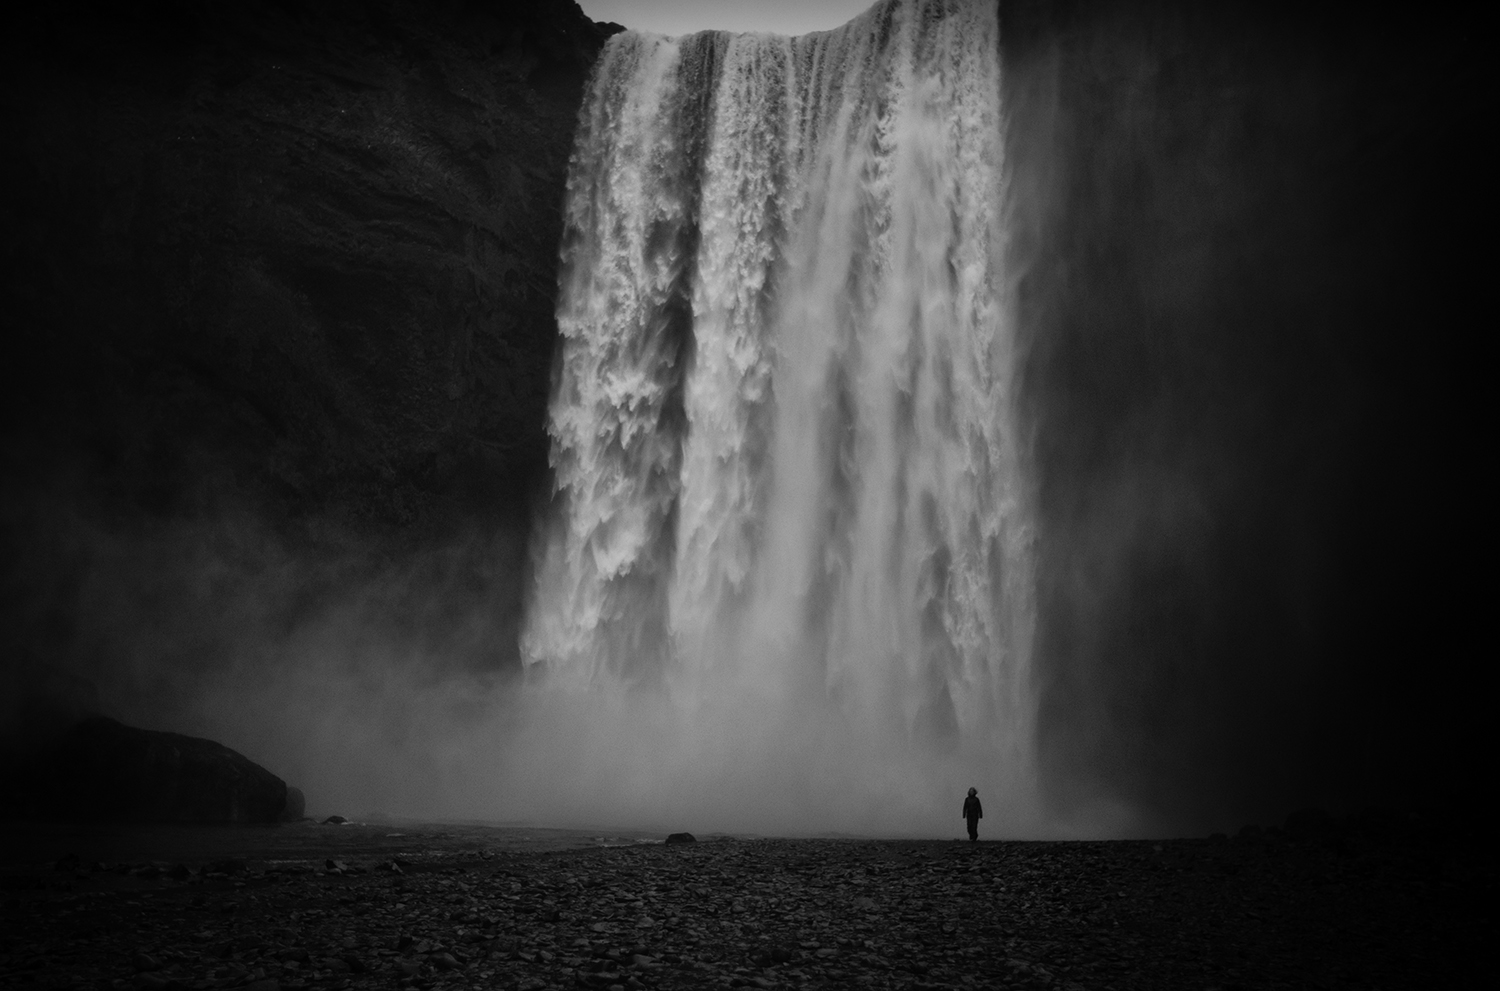 SN-4804-sophie-narses-photographe-islande-voyage-aventure-book-shooting-portrait-geneve-mariage-suisse-famille-animaux-tirages-art-cours-photo-paysages-canon